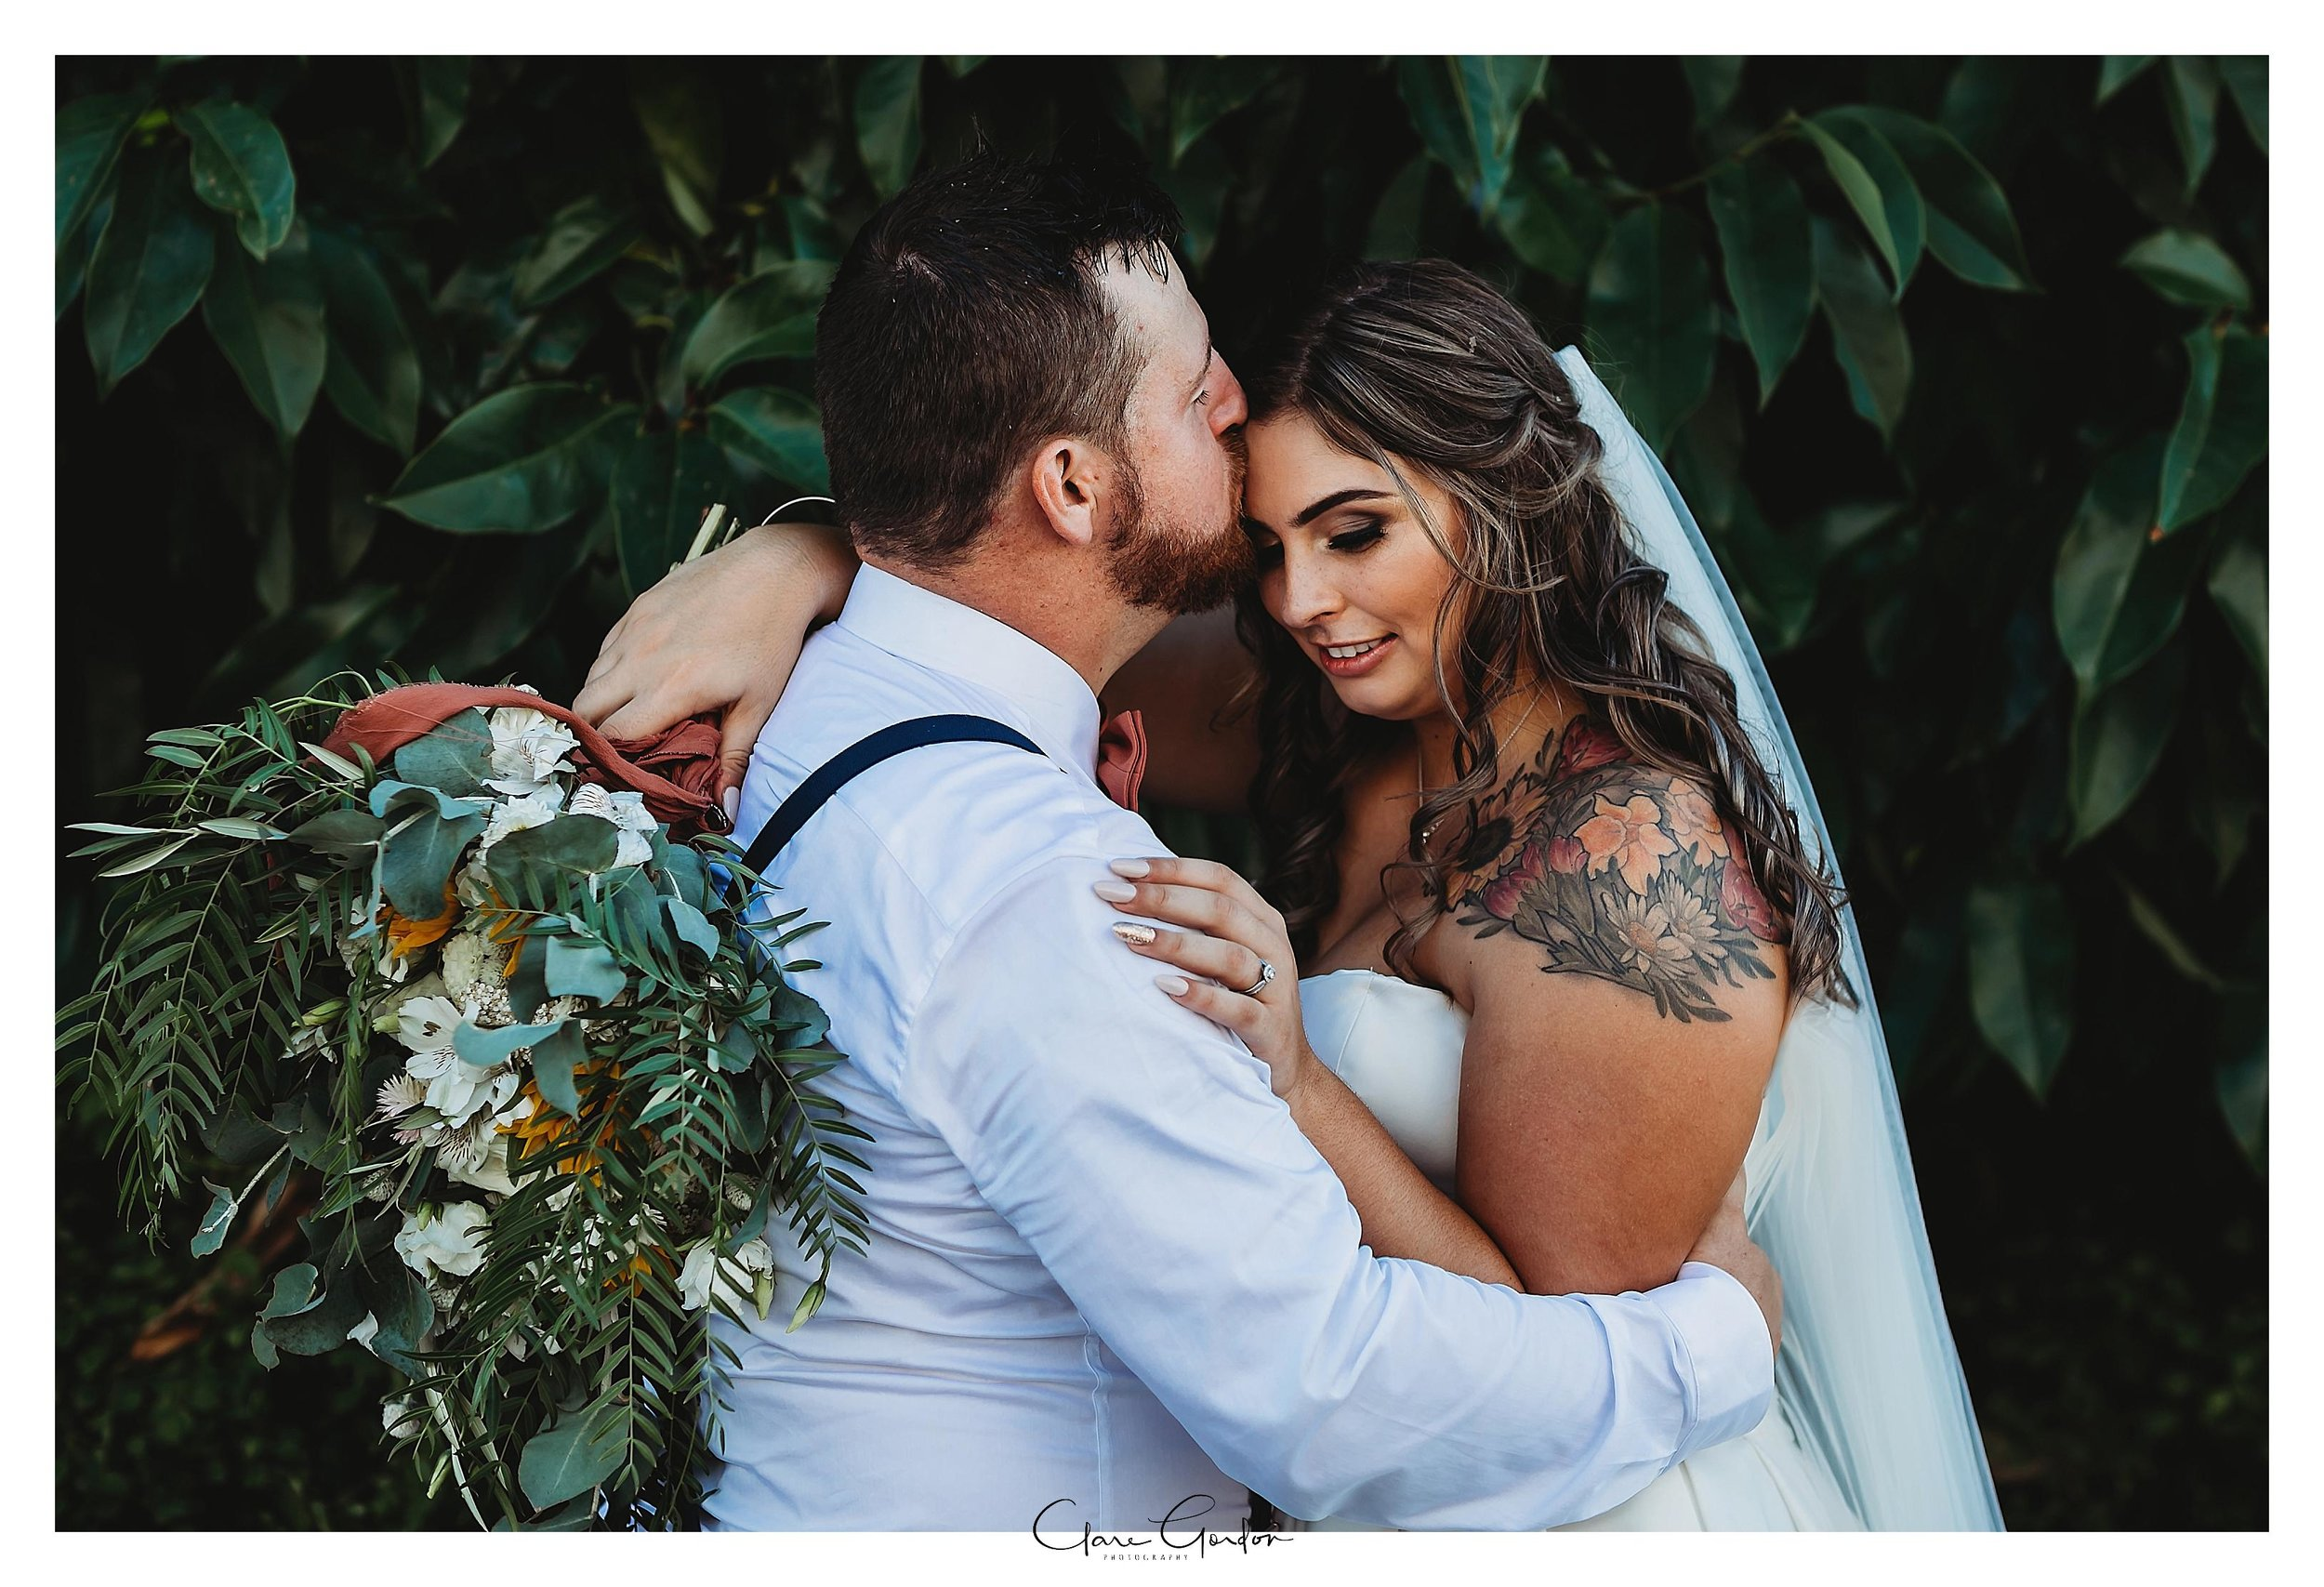 Bride-and-groom-wedding-photo-Coopers-function-center-waikato